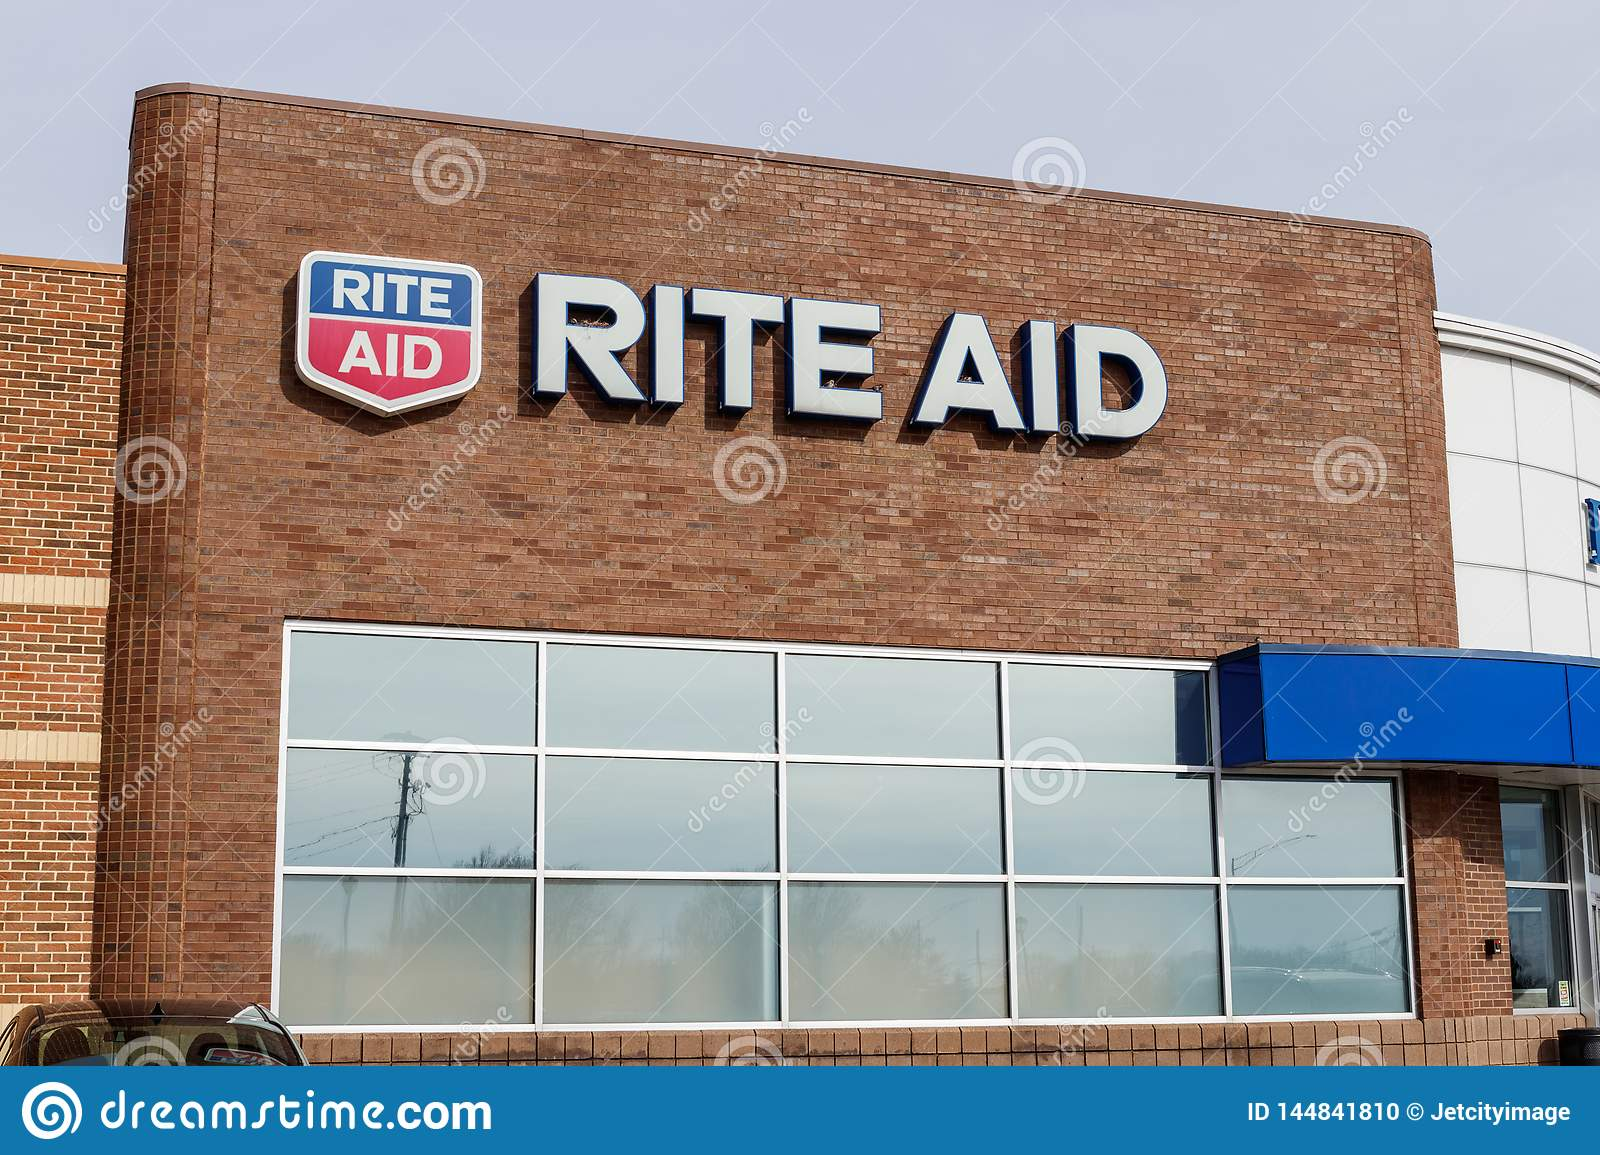 Rite Aid Drug Store and Pharmacy. In 2018, Rite Aid transferred 625 stores to WBA, the owner of Walgreens II